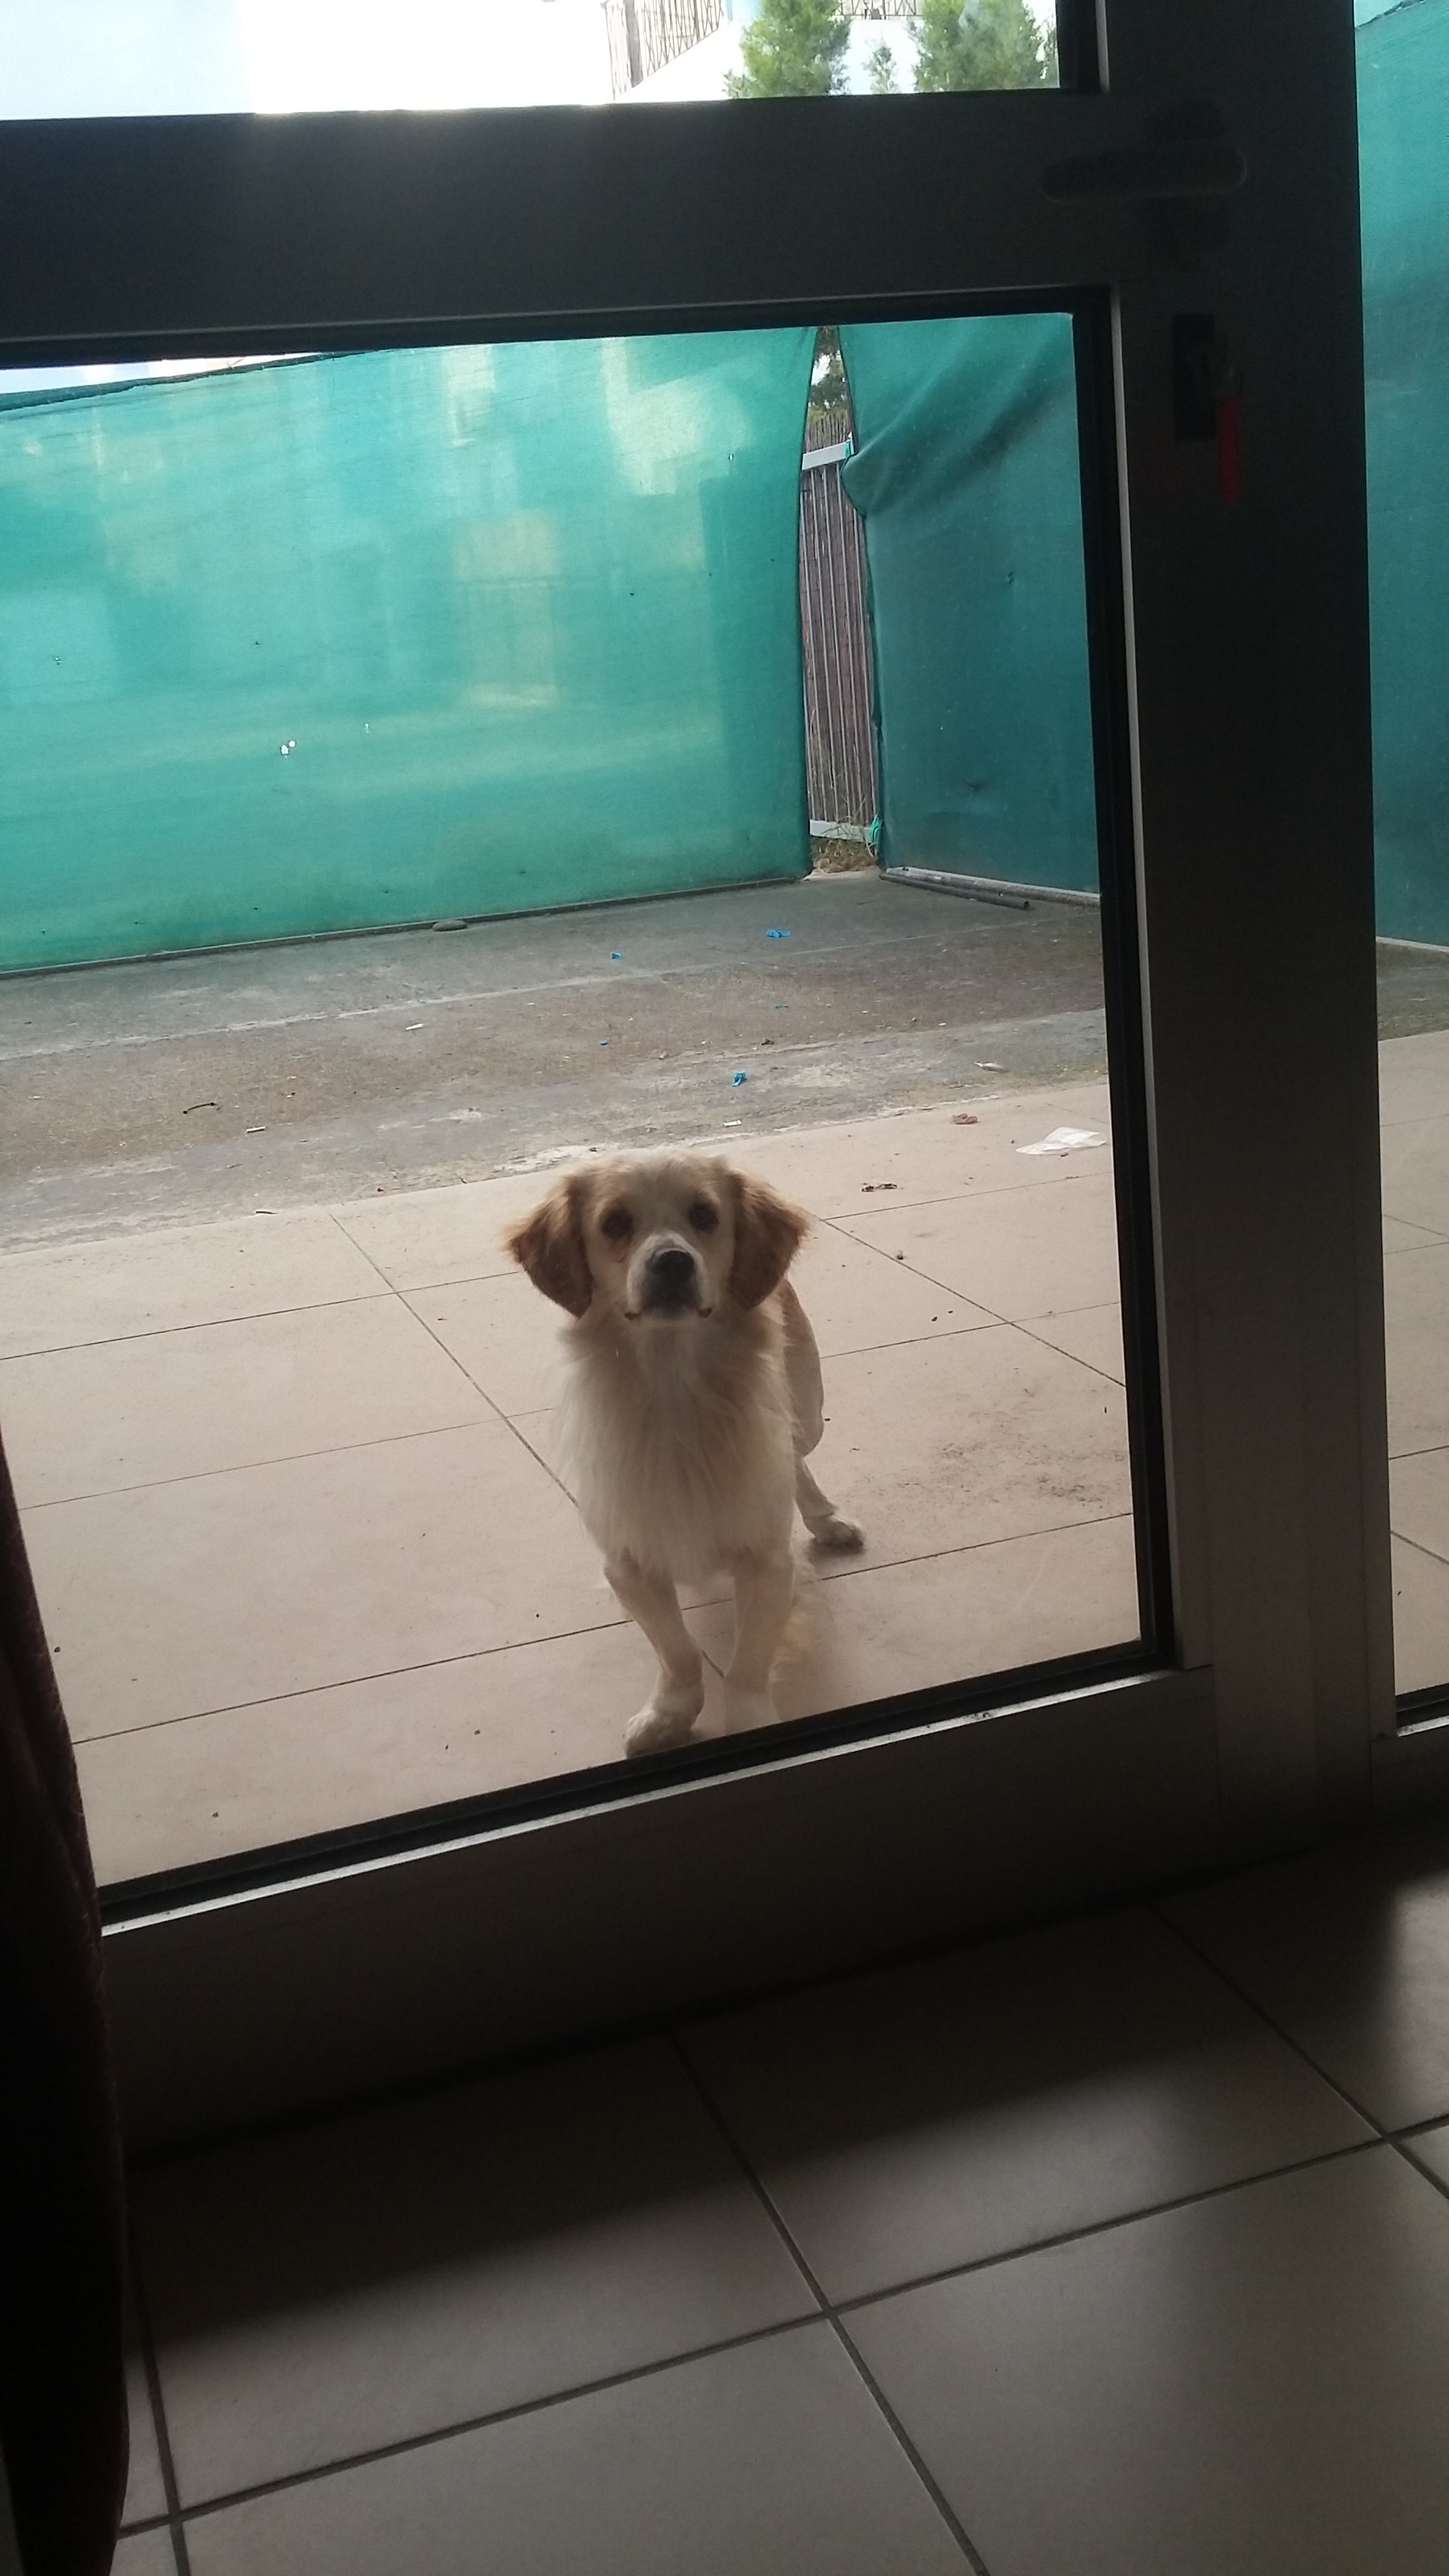 This sweet little pup would come up to our window every day, stare at us for a little while then walk off :'(